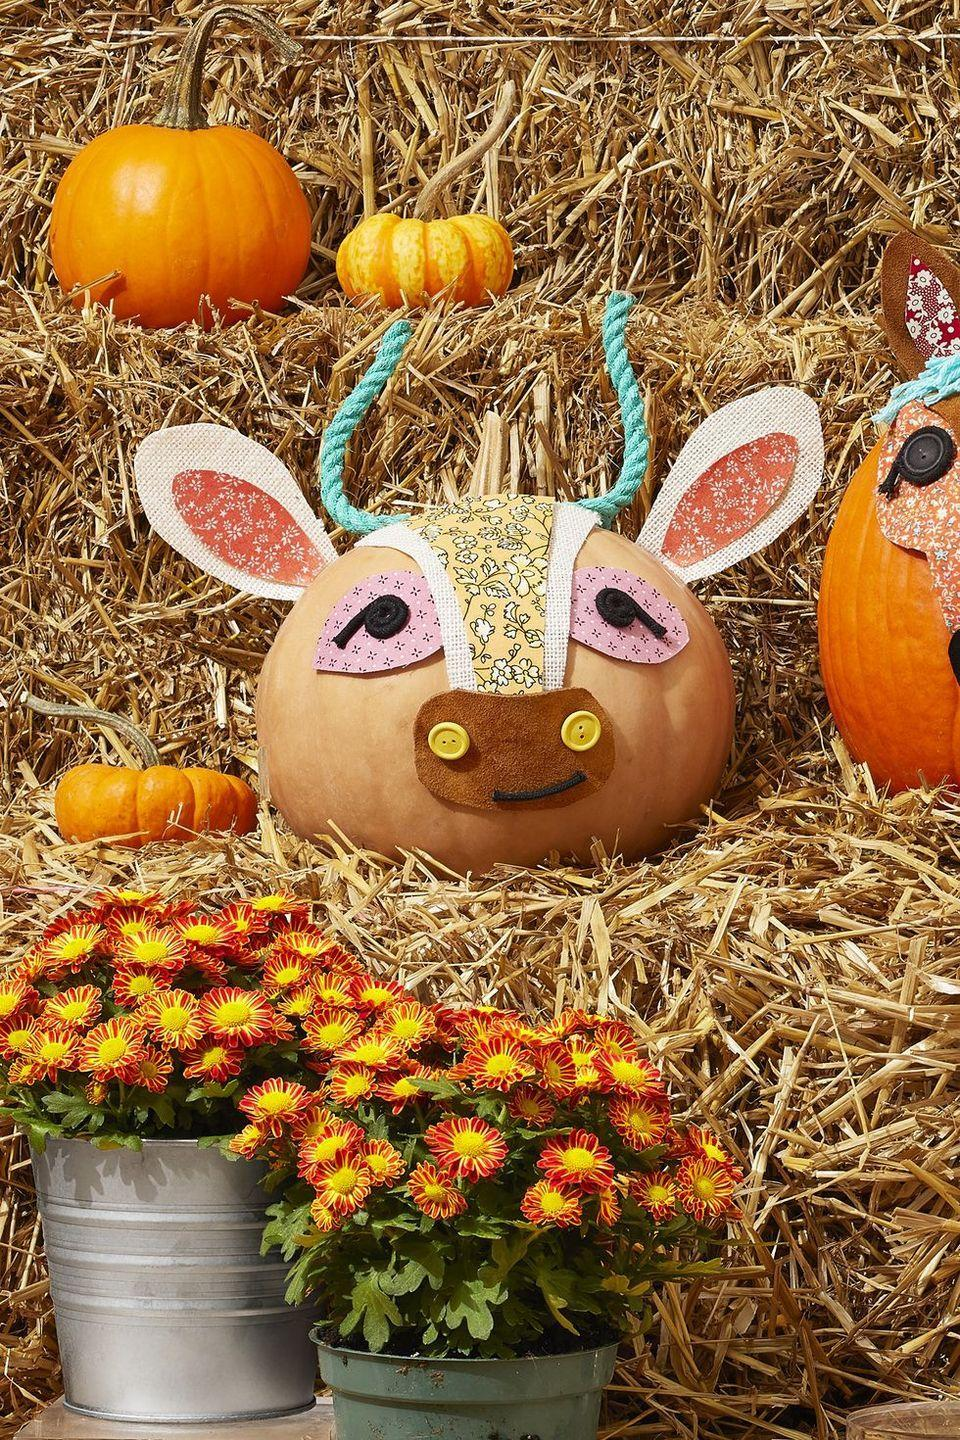 """<p><em>Moo</em>-ve over, plain pumpkins!Arrange pieces of floral fabric on a white or neutral-toned pumpkin to create this cow's ears, nose, and eyes, then stick them to pieces of burlap and hot glue on. Use buttons to dress up the nose and black cotton cord to form the eyes.</p><p><a class=""""link rapid-noclick-resp"""" href=""""https://go.redirectingat.com?id=74968X1596630&url=https%3A%2F%2Fwww.walmart.com%2Fip%2FBlack-Waxed-Cotton-cord-2mm-100-meters%2F704851905&sref=https%3A%2F%2Fwww.thepioneerwoman.com%2Fhome-lifestyle%2Fdecorating-ideas%2Fg36664123%2Fwhite-pumpkin-decor-ideas%2F"""" rel=""""nofollow noopener"""" target=""""_blank"""" data-ylk=""""slk:SHOP BLACK WAXED COTTON CORD"""">SHOP BLACK WAXED COTTON CORD</a></p>"""